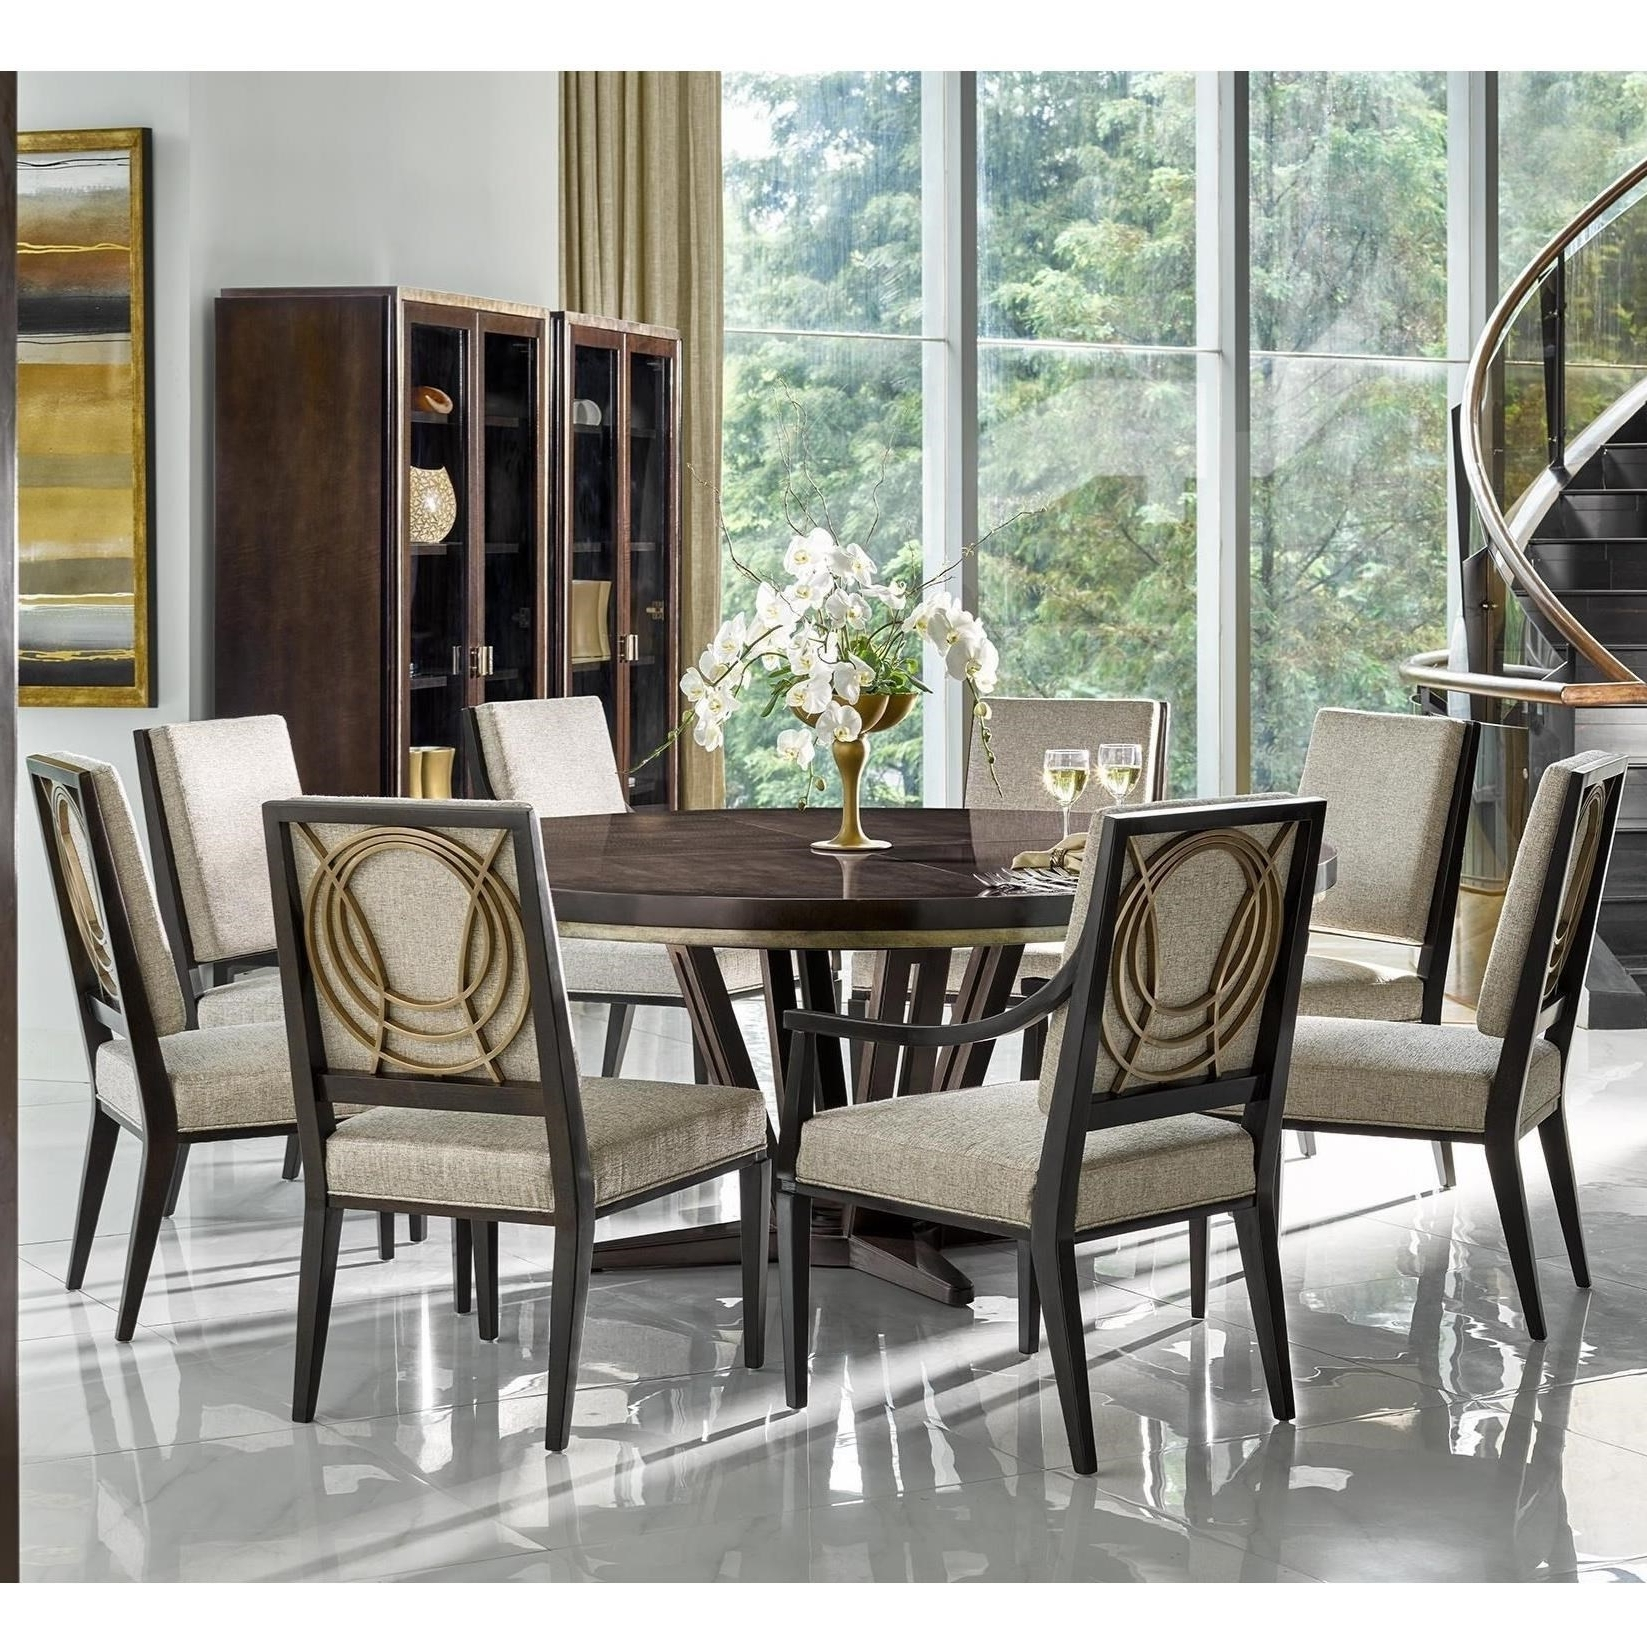 Chapleau Ii 9 Piece Extension Dining Tables With Side Chairs With Recent Cheery Caira Piece Extension Set Back Chairs Caira Piece Extension (View 7 of 25)